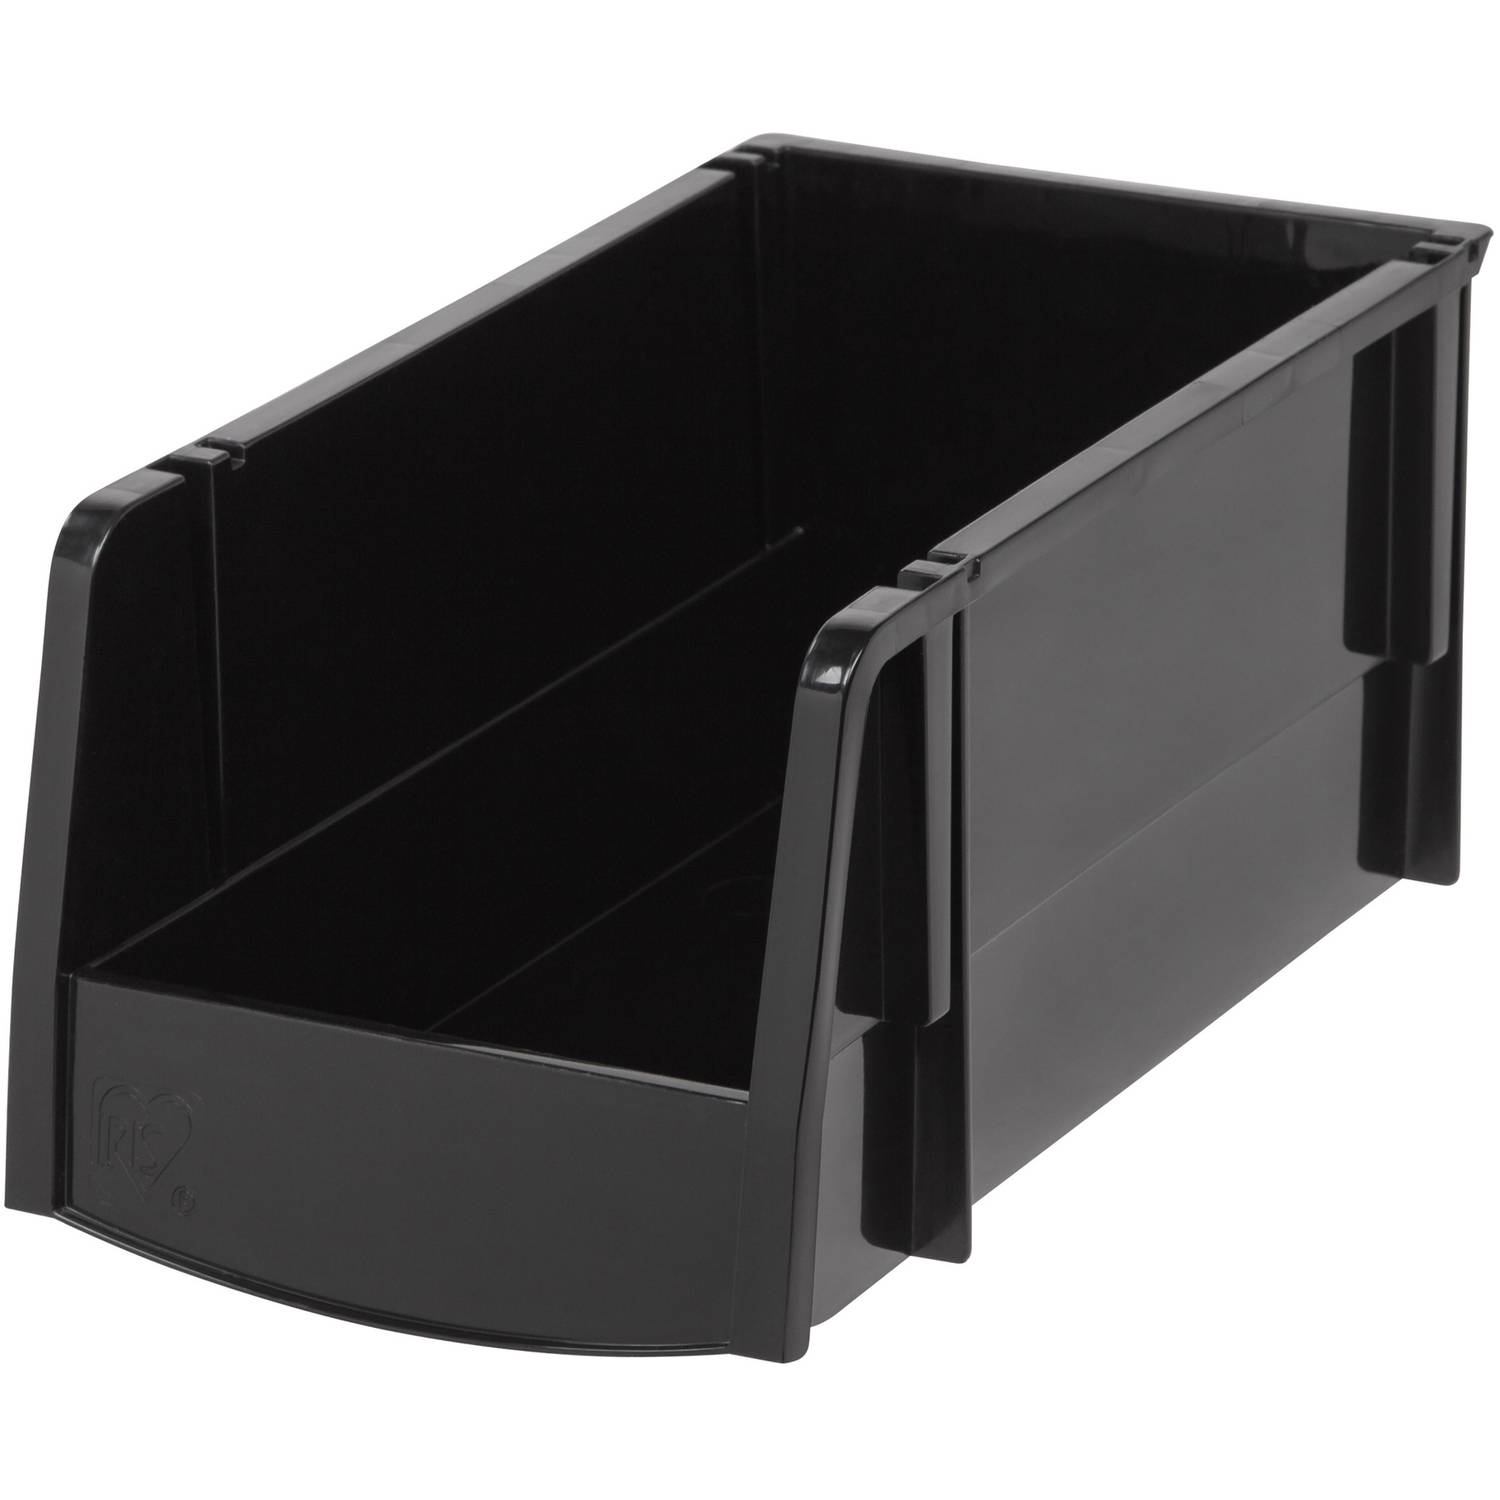 IRIS Medium Stacking Storage Bin, Black